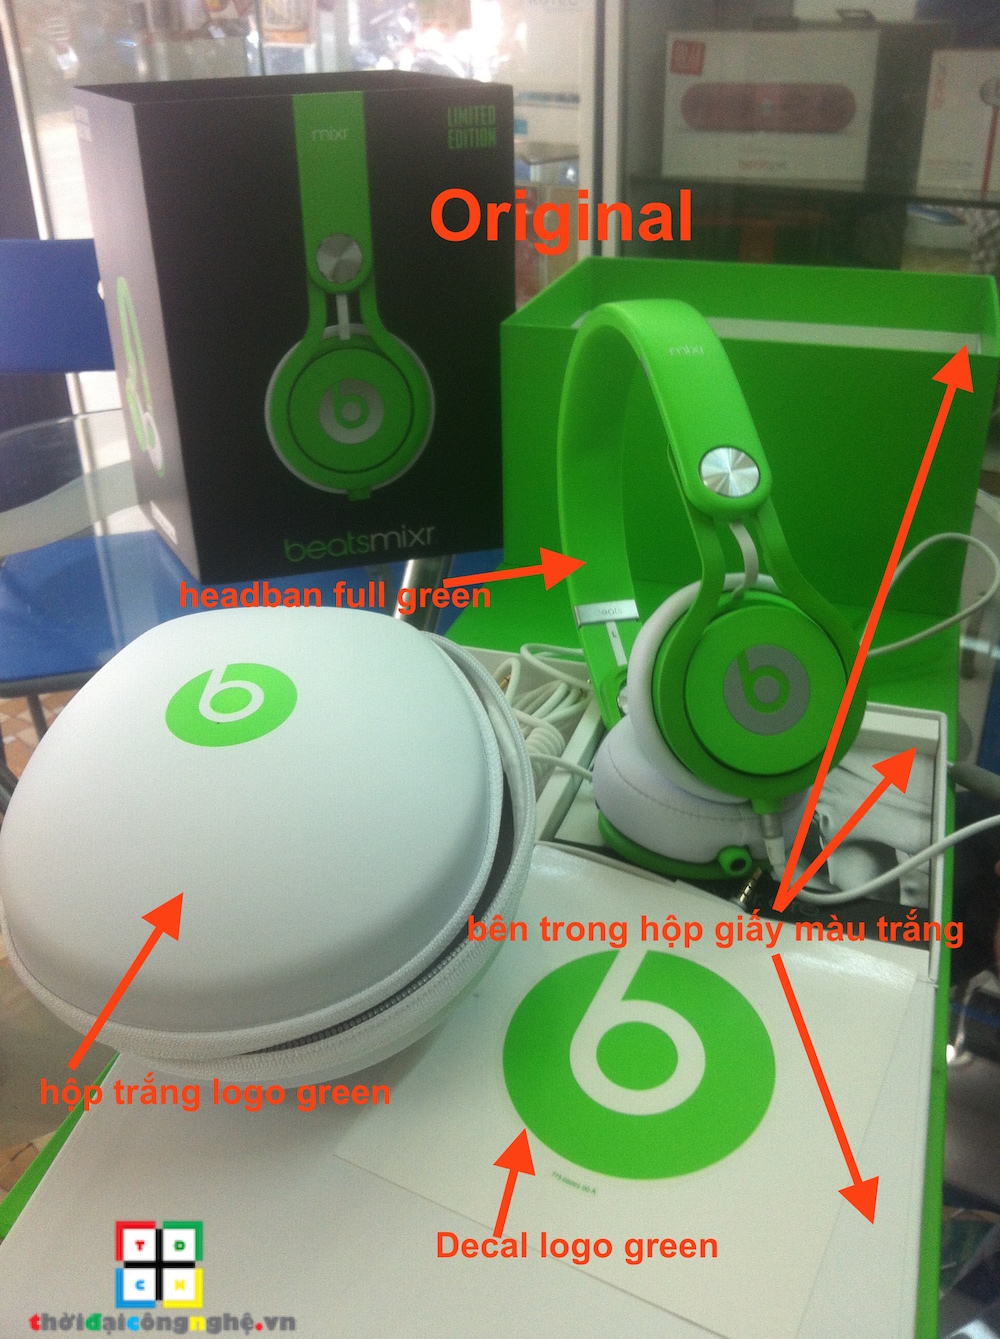 phan-biet-beats-mirx-original-va-fake-1